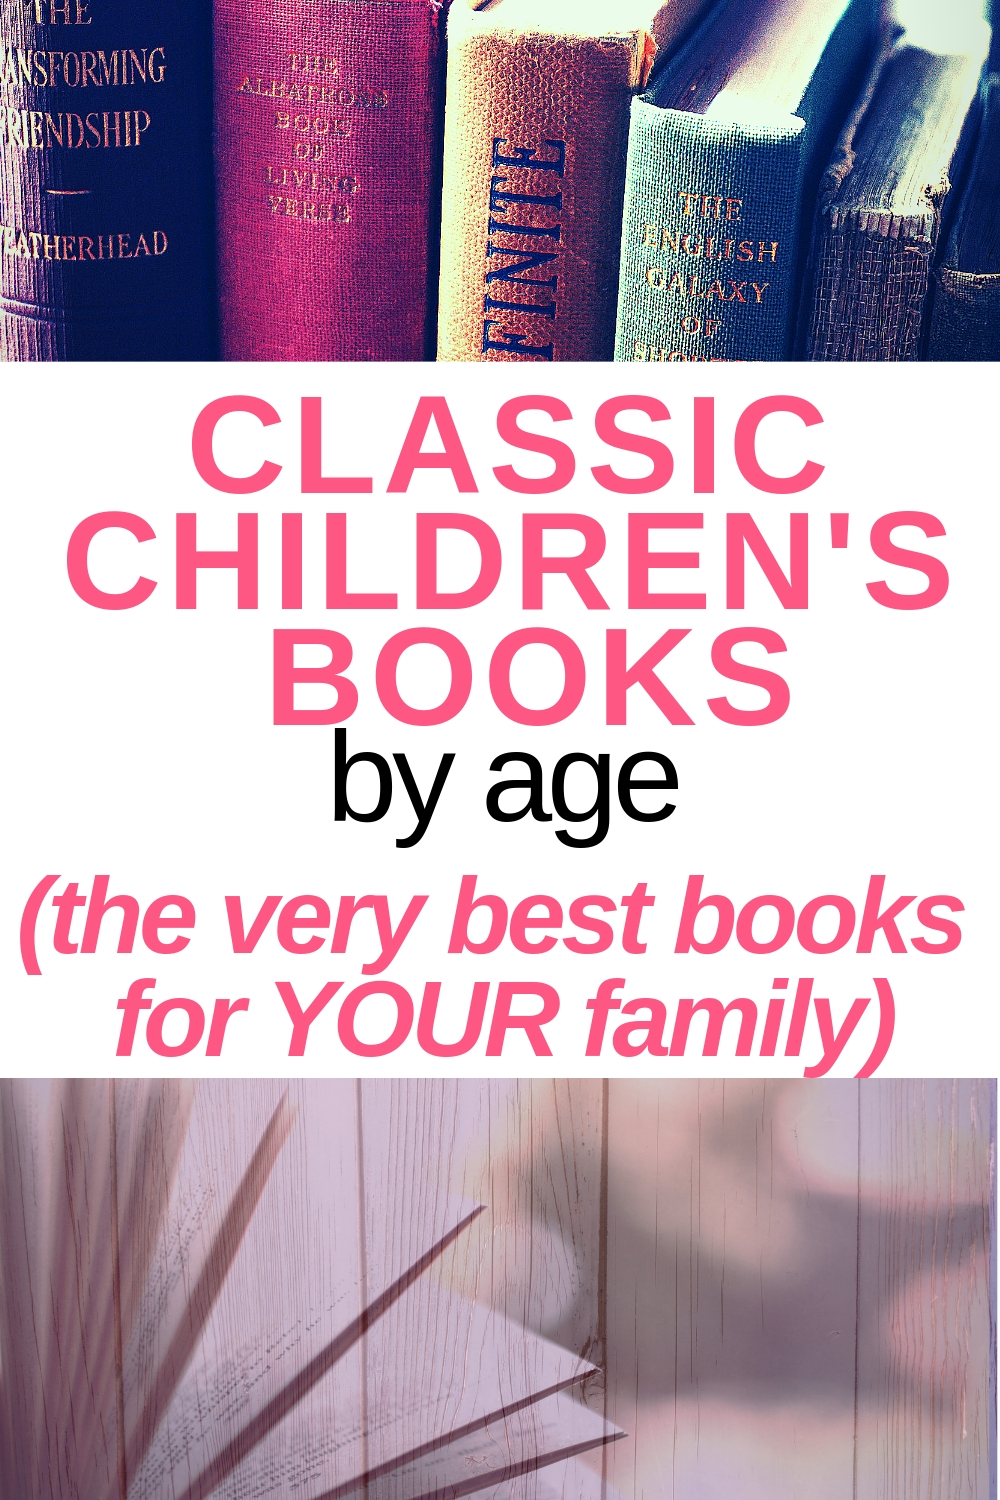 Classic Children's Books by Age and popular elementary school book series for your child